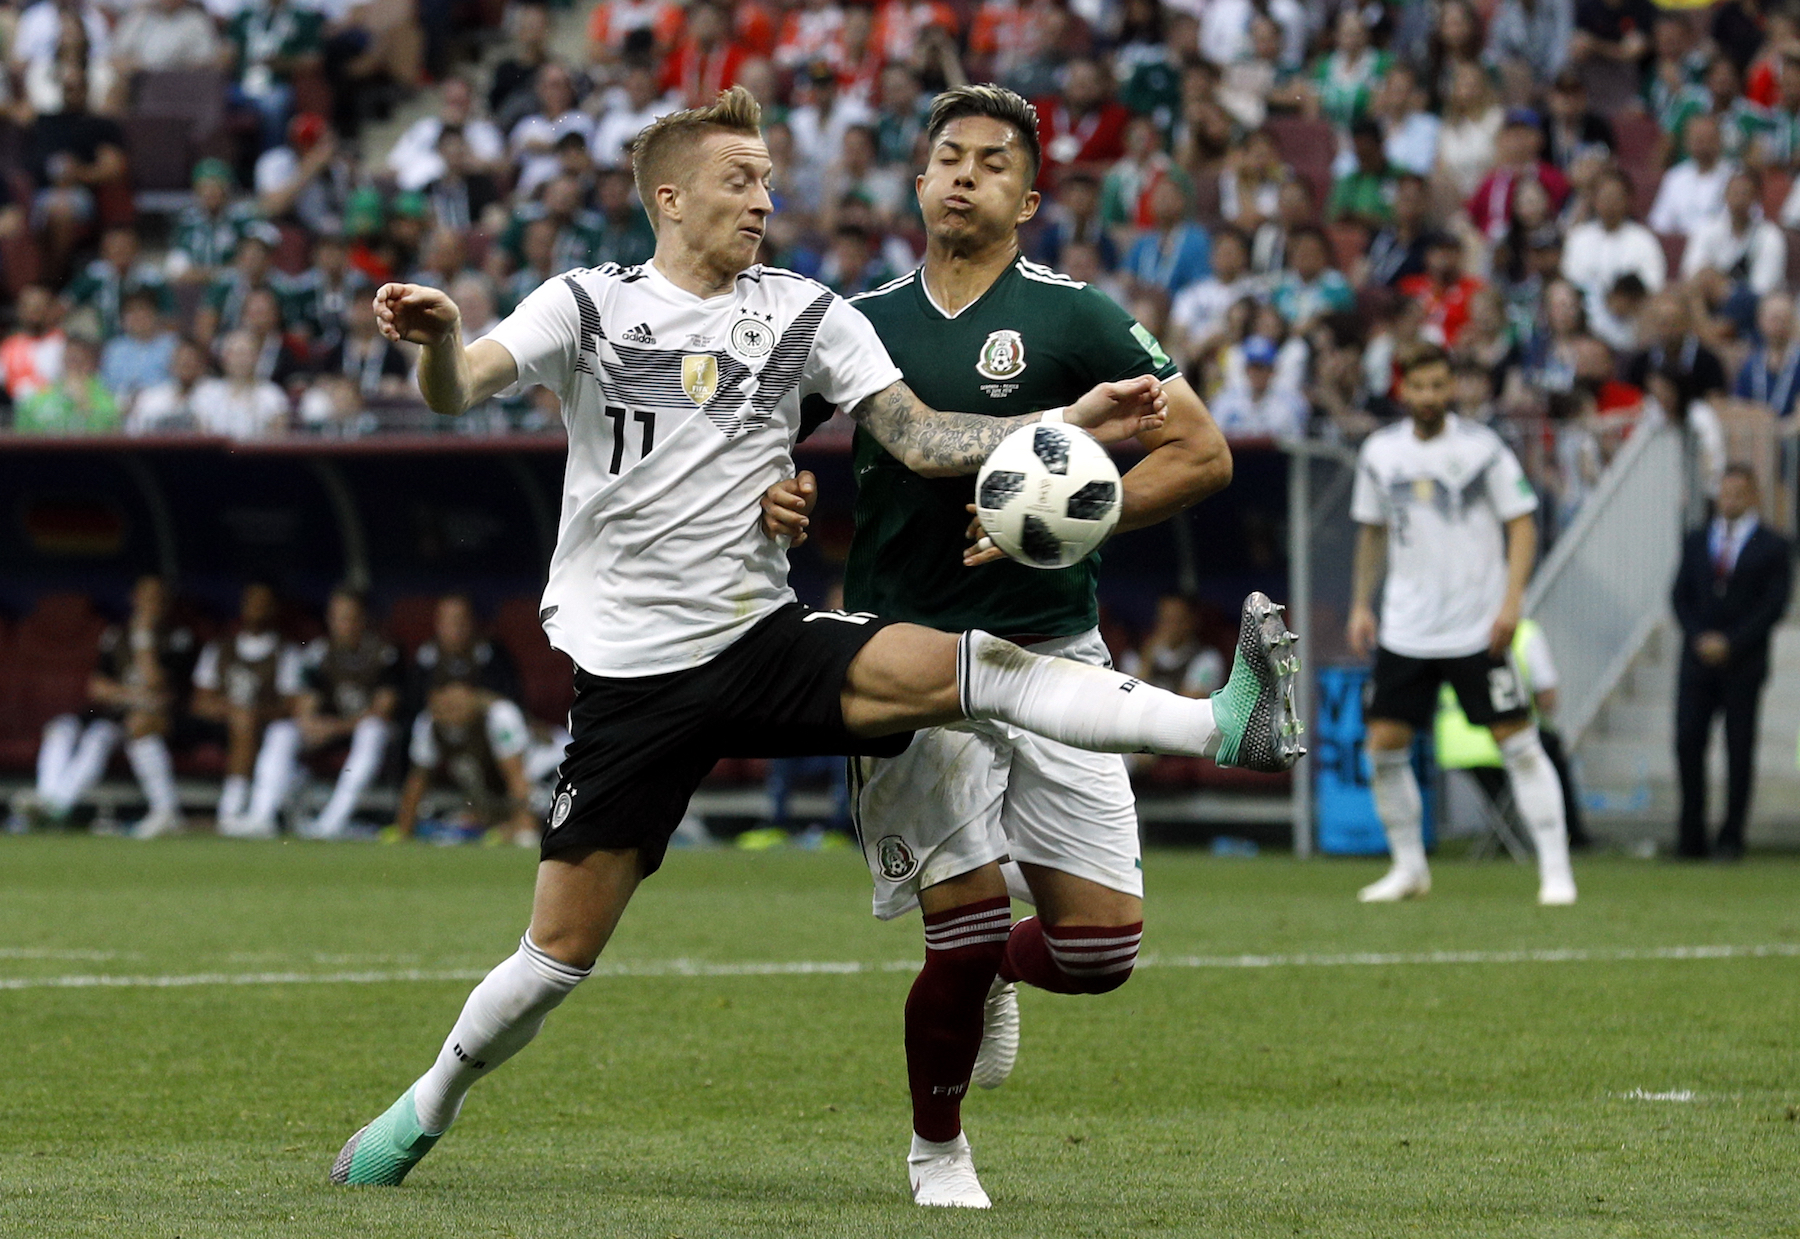 <div class='meta'><div class='origin-logo' data-origin='AP'></div><span class='caption-text' data-credit='AP Photo/Victor R. Caivano'>Germany's Marco Reus, left, fights for the ball with Mexico's Carlos Salcedo during the group F match between Germany and Mexico at the 2018 soccer World Cup.</span></div>